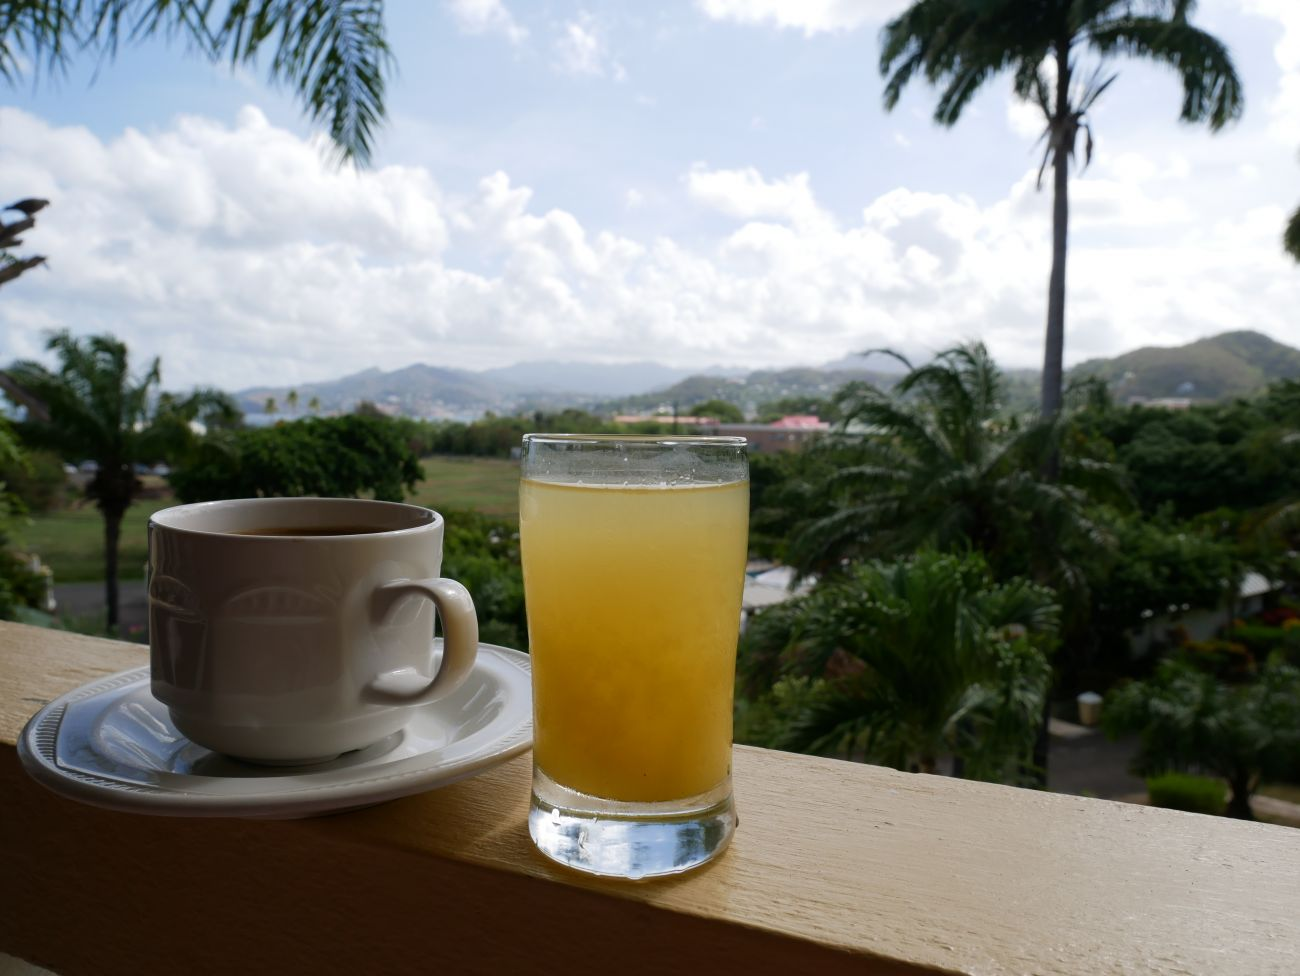 Coffee and juice with a view